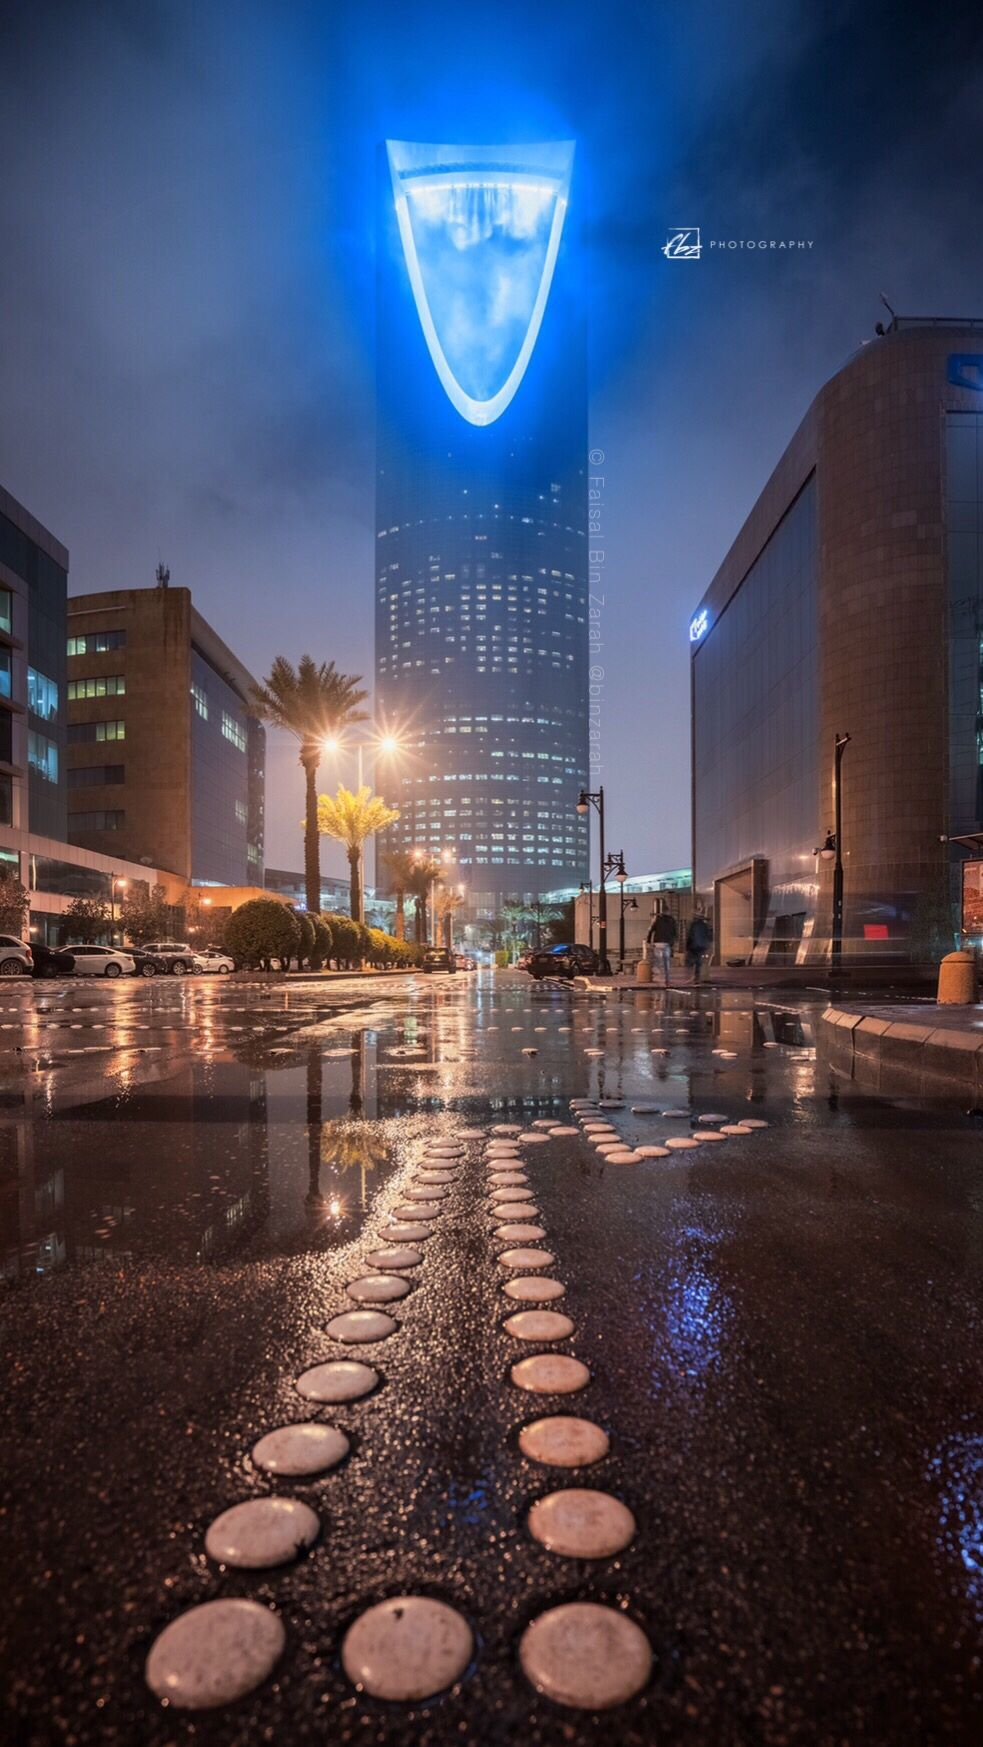 Riyadh Low Clouds Spotted Passing Through The Famous Iconic Building Of Riyadh The Capital Of Saudi Arabia Iconic Buildings Saudi Arabia Culture Riyadh